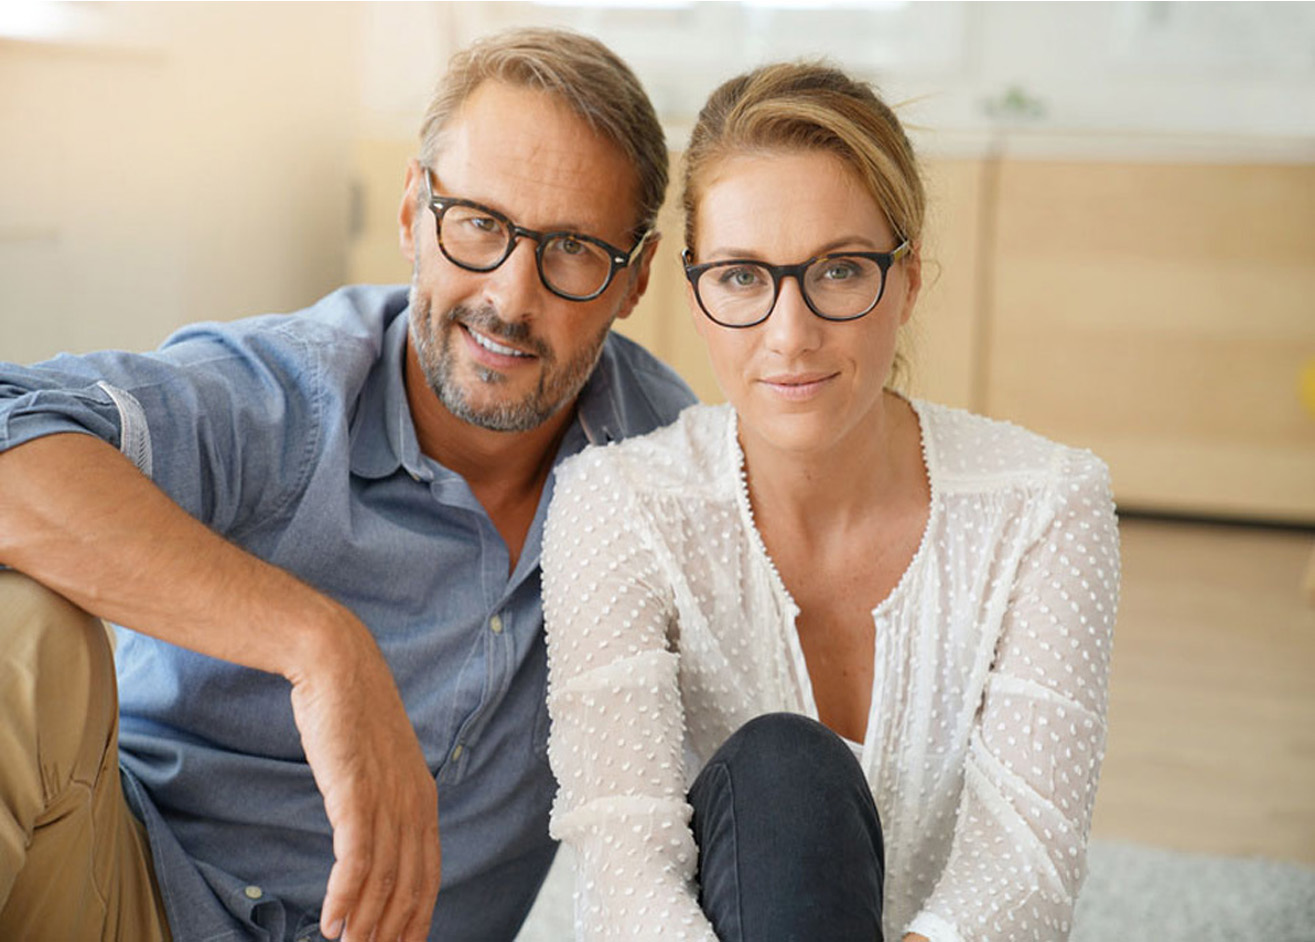 couple frames glasses showing products exavue optometrist paris optician